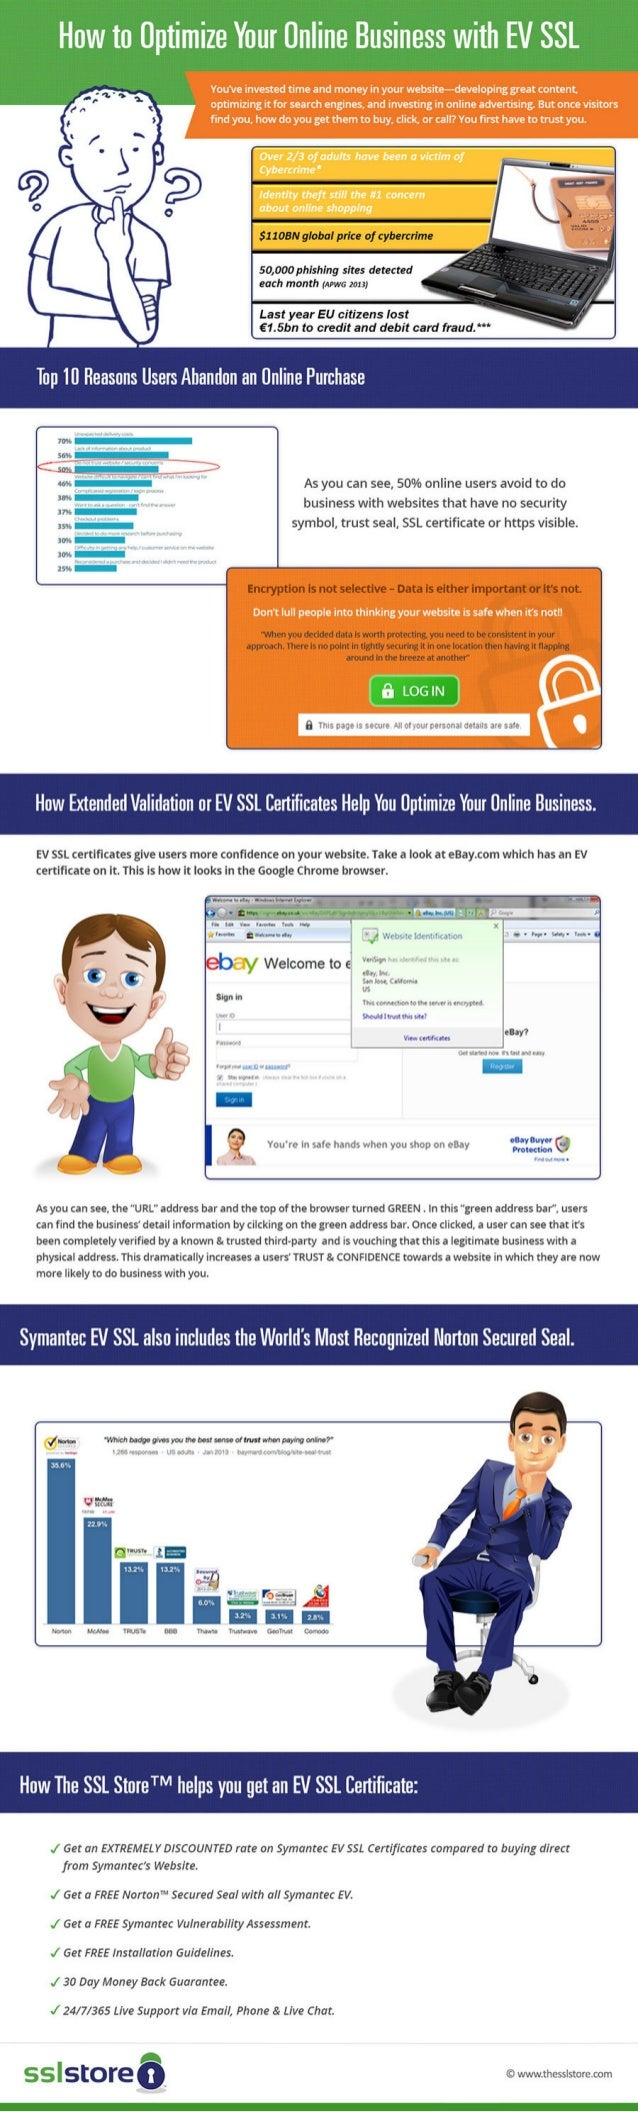 How to Optimize Your Online Business with EV SSL - Infographic